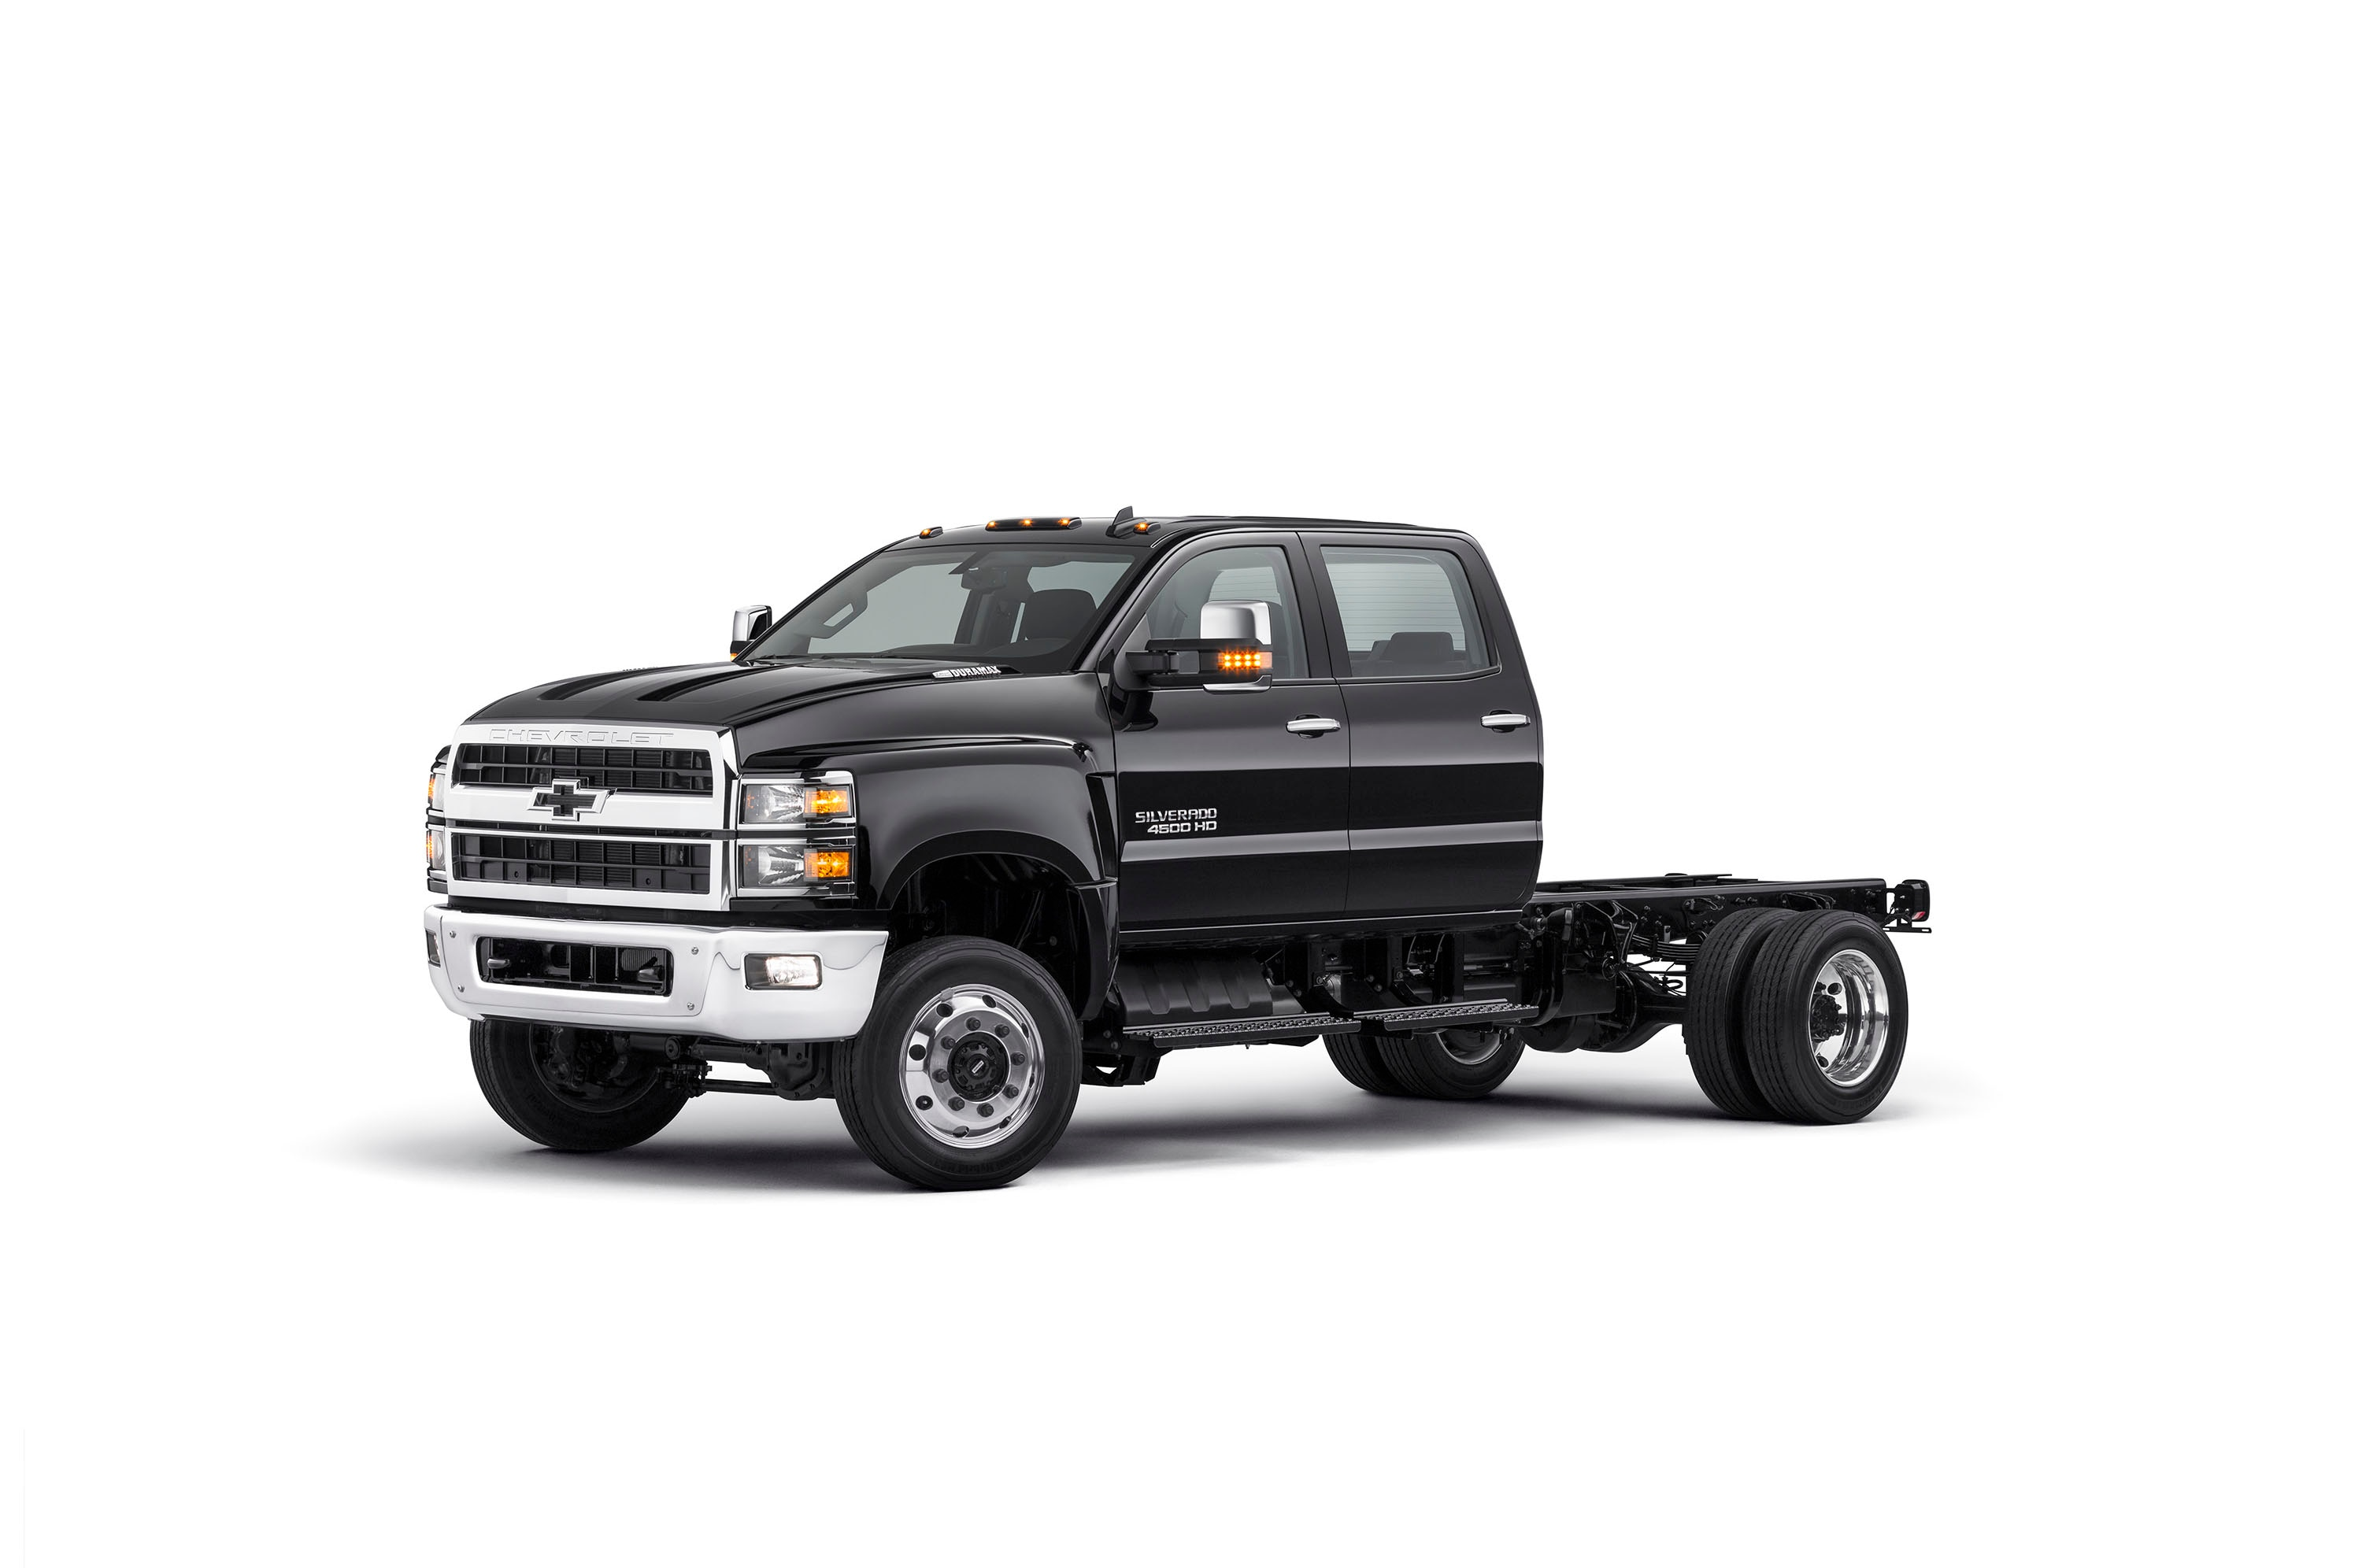 Chevrolet Silverado Hd Chassis Cab Front Three Quarter on Chevy 4500 Truck Crew Cab 4x4